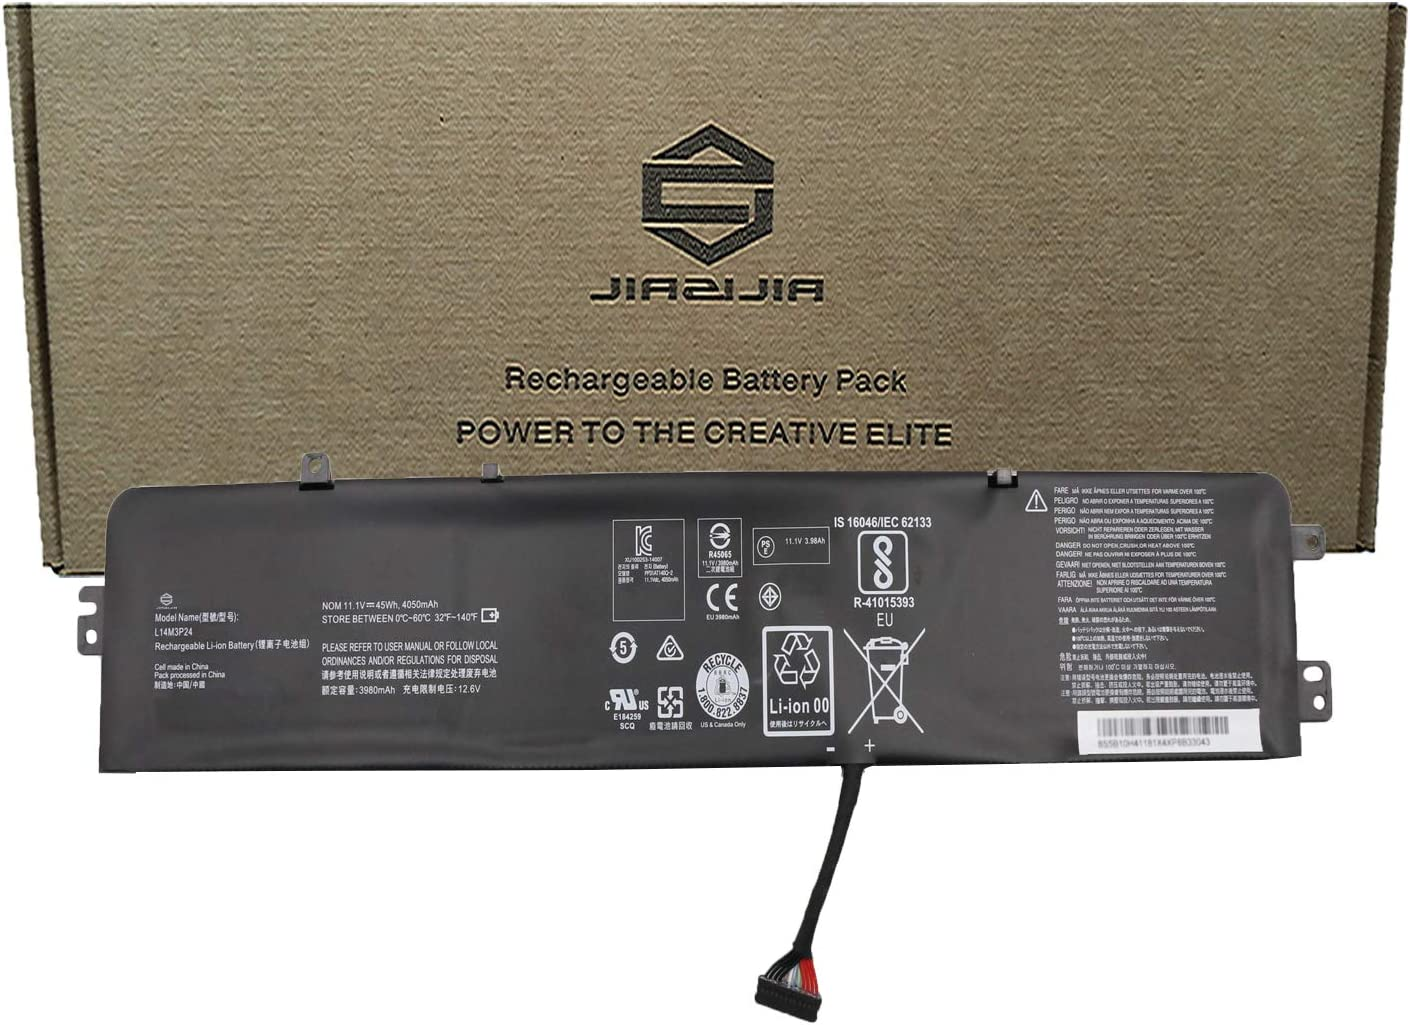 JIAZIJIA L14M3P24 Laptop Battery Replacement for Lenovo IdeaPad Y700-14ISK 700-15ISK 700-17ISK Legion Y520-15IKBA Y520-15IKBM Y520-15IKBN Series L14S3P24 L16S3P24 L16M3P24 11.1V 45Wh 4050mAh 3-Cell